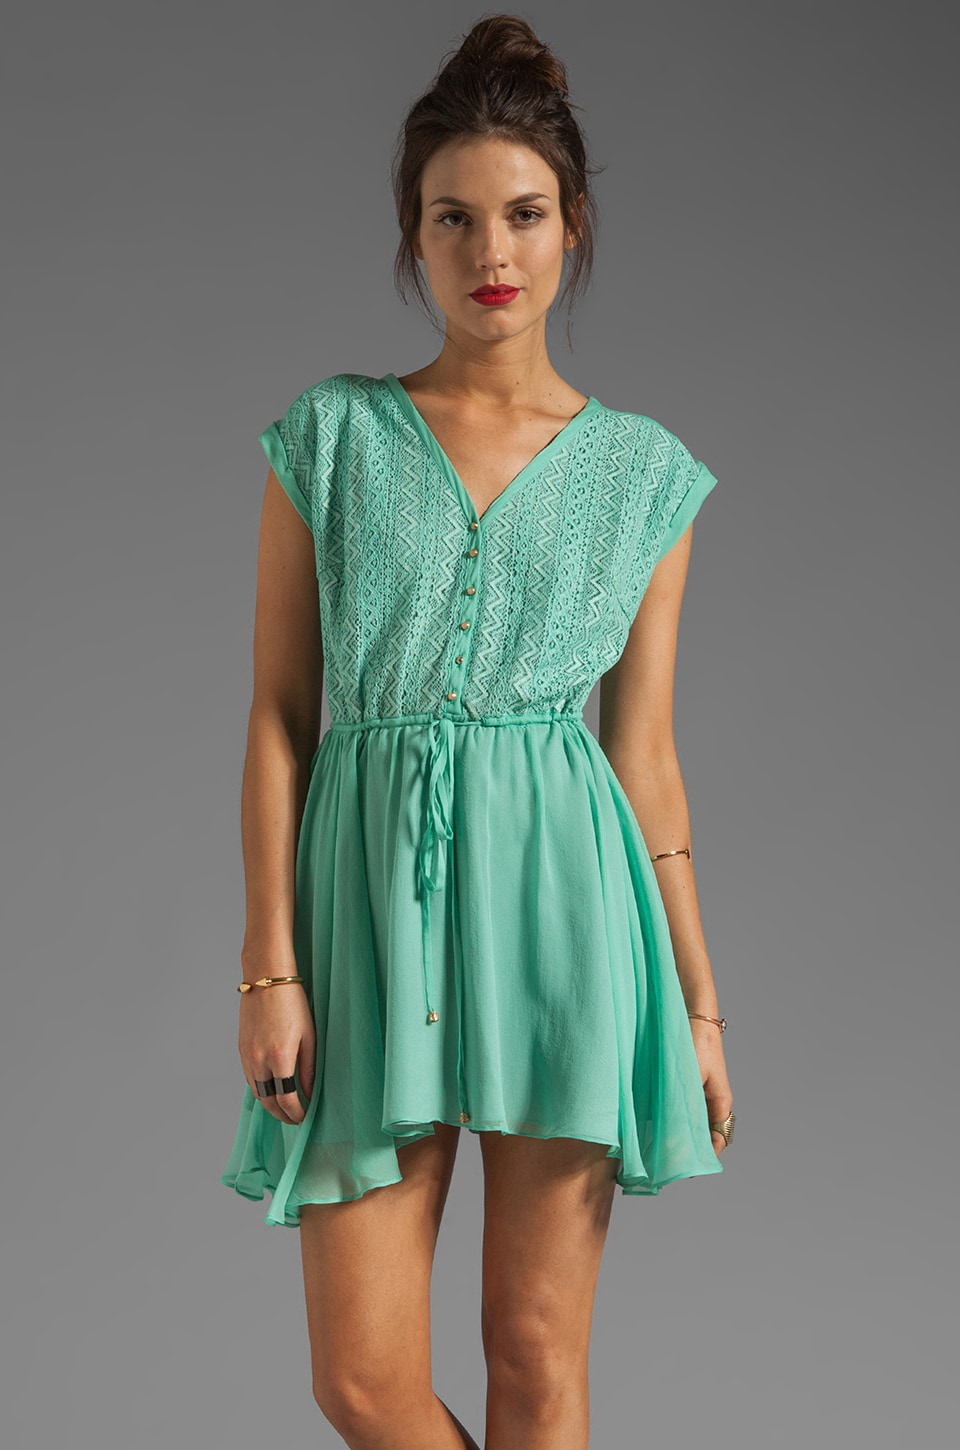 heartLoom Estelle Dress in Seafoam